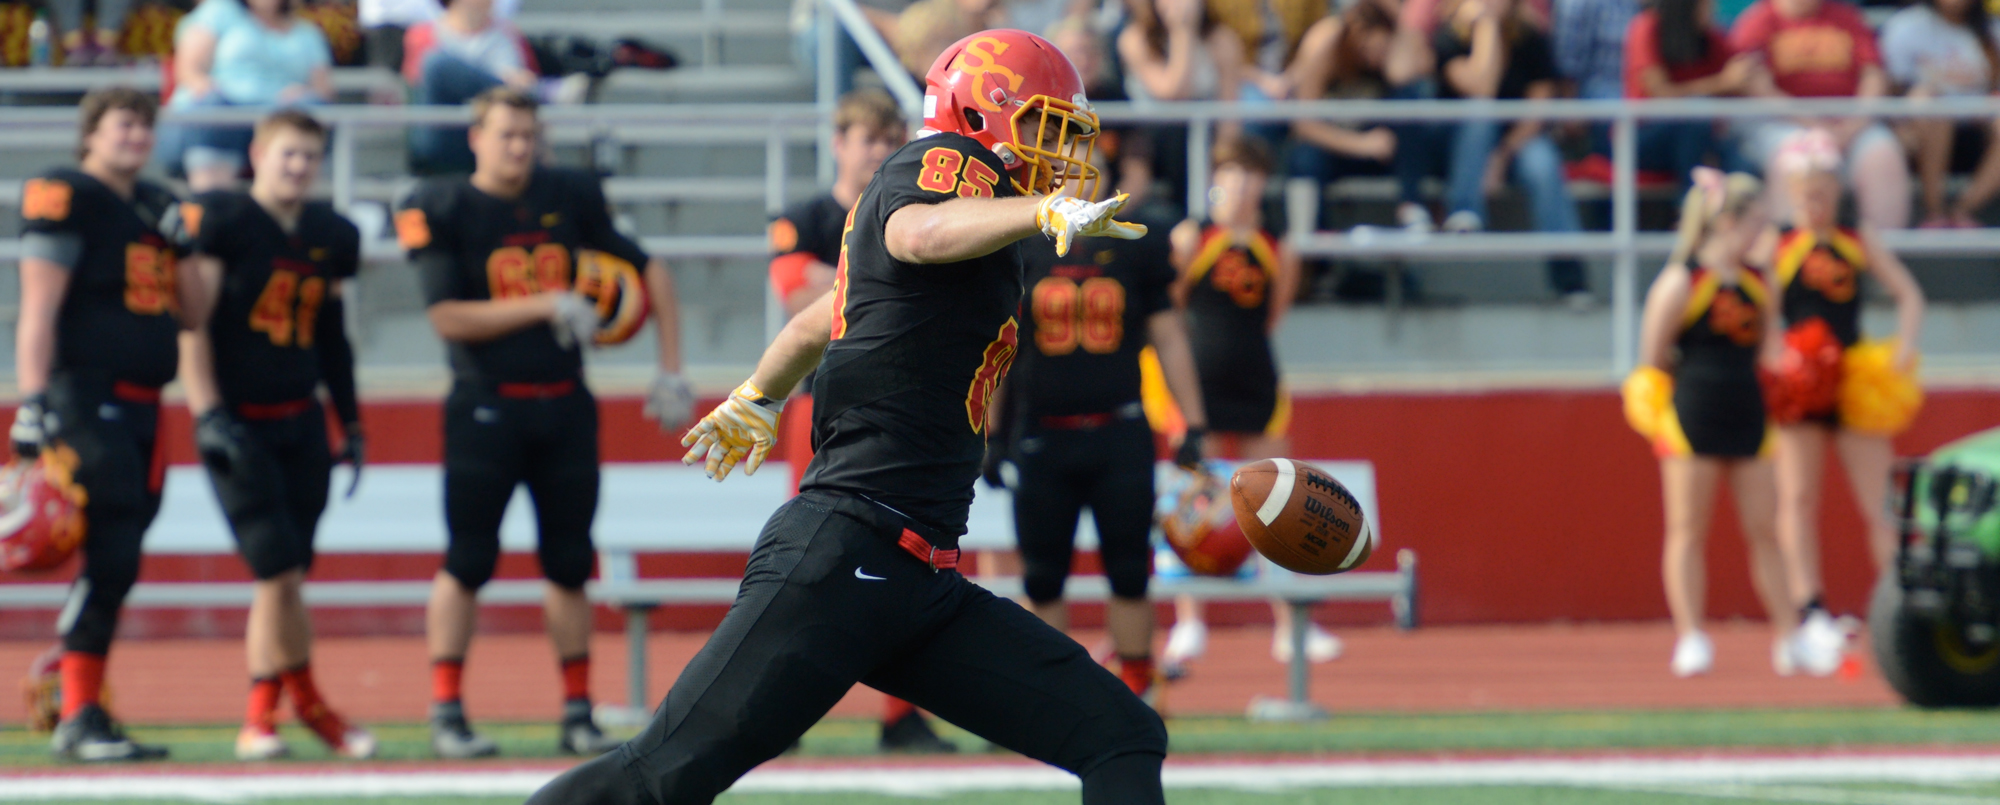 Hawkins named to D3football.com Team of the Week for second week in a row